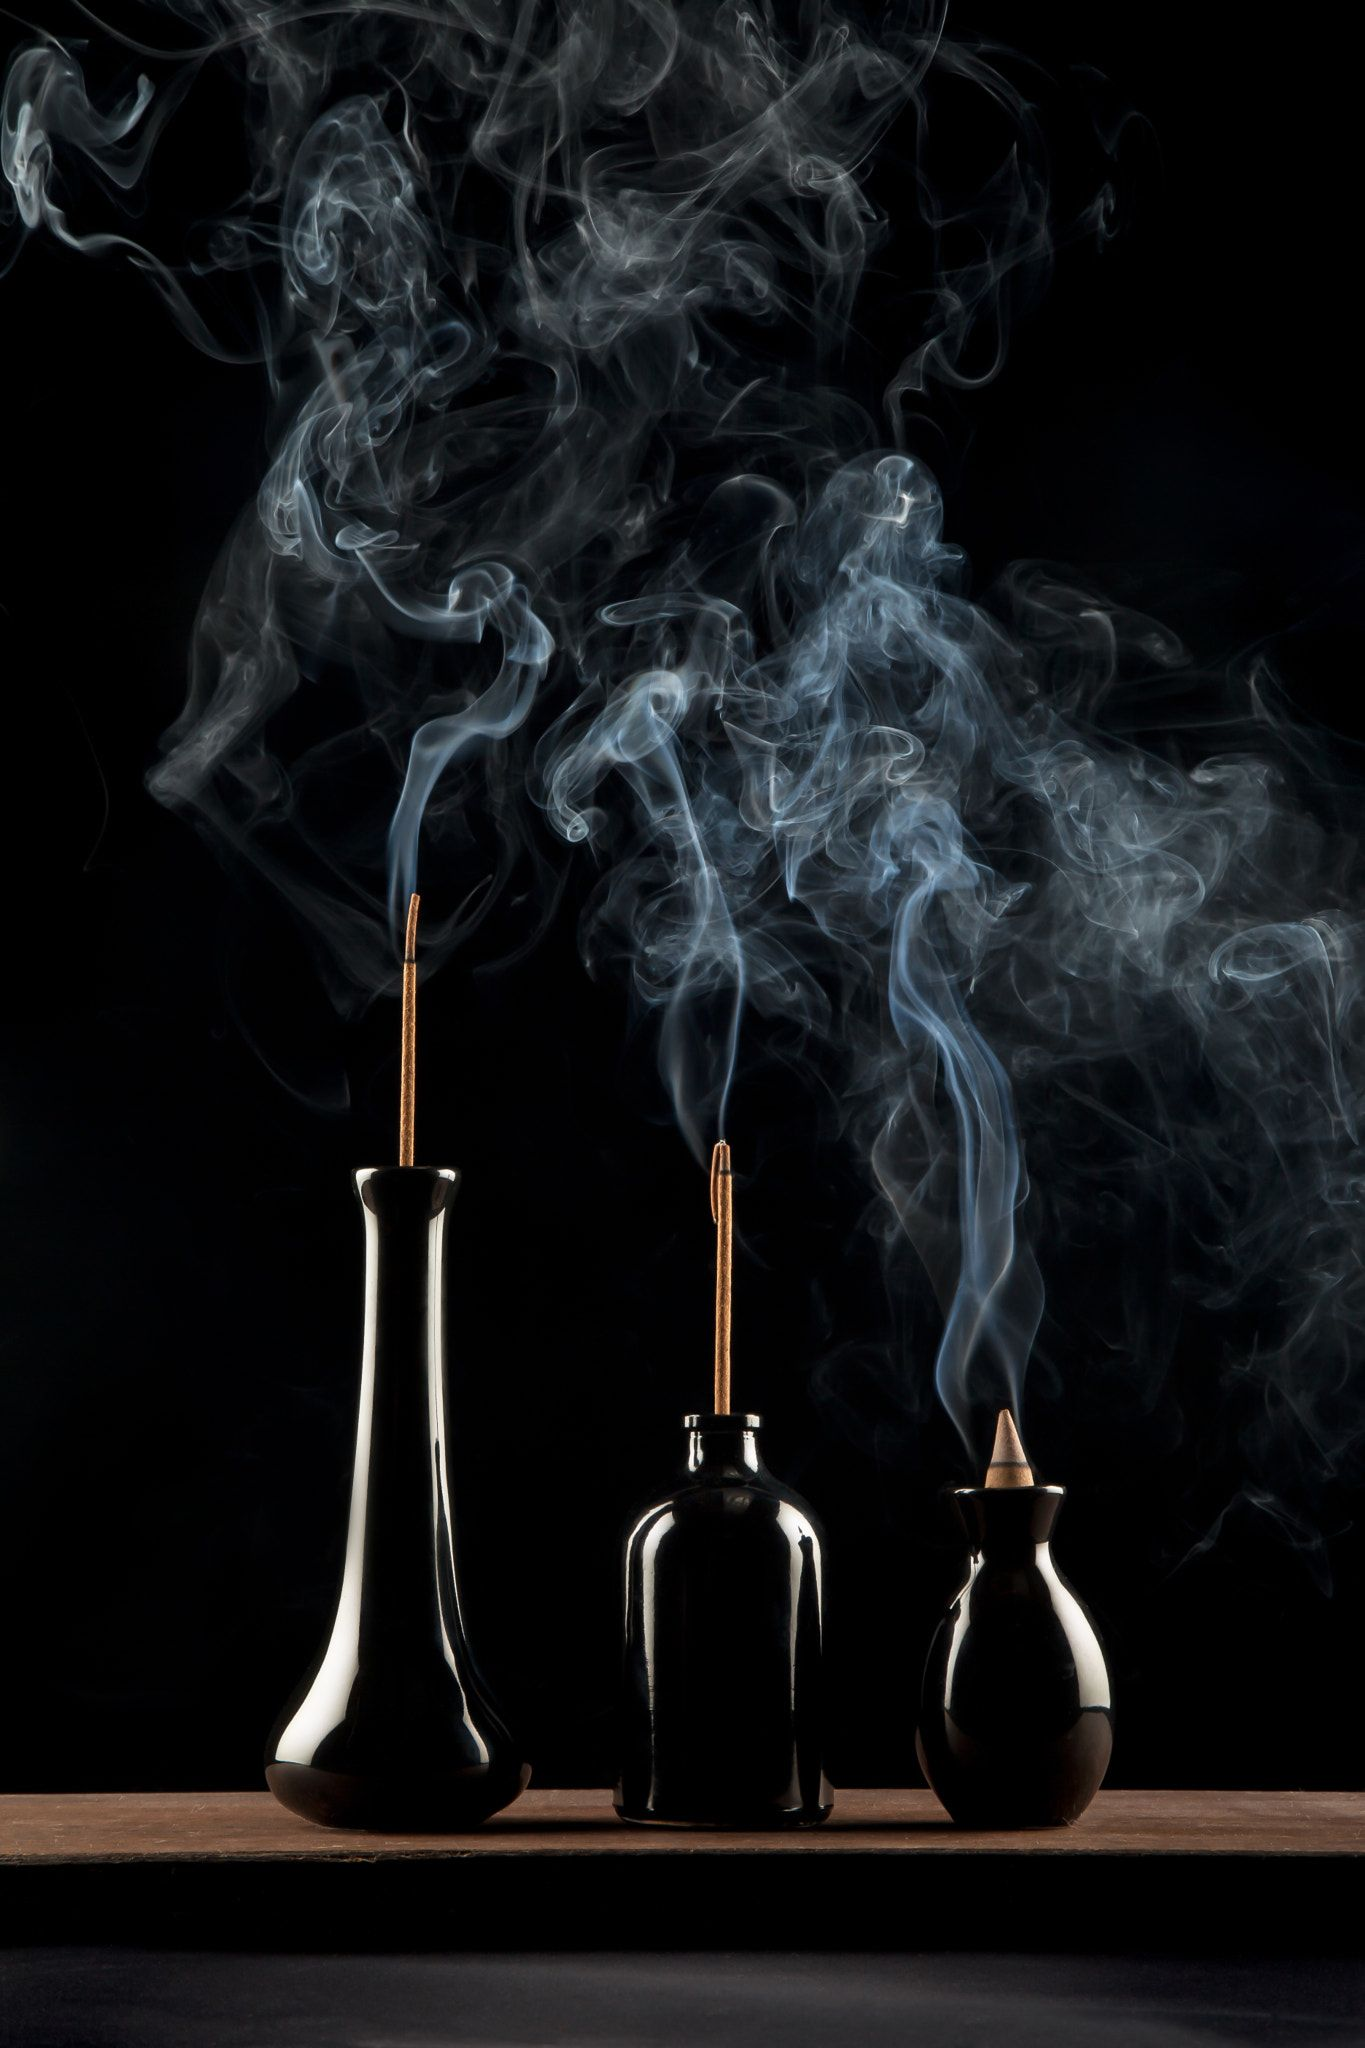 Black Magic  Three Plumes Of Incense Smoke Rise From